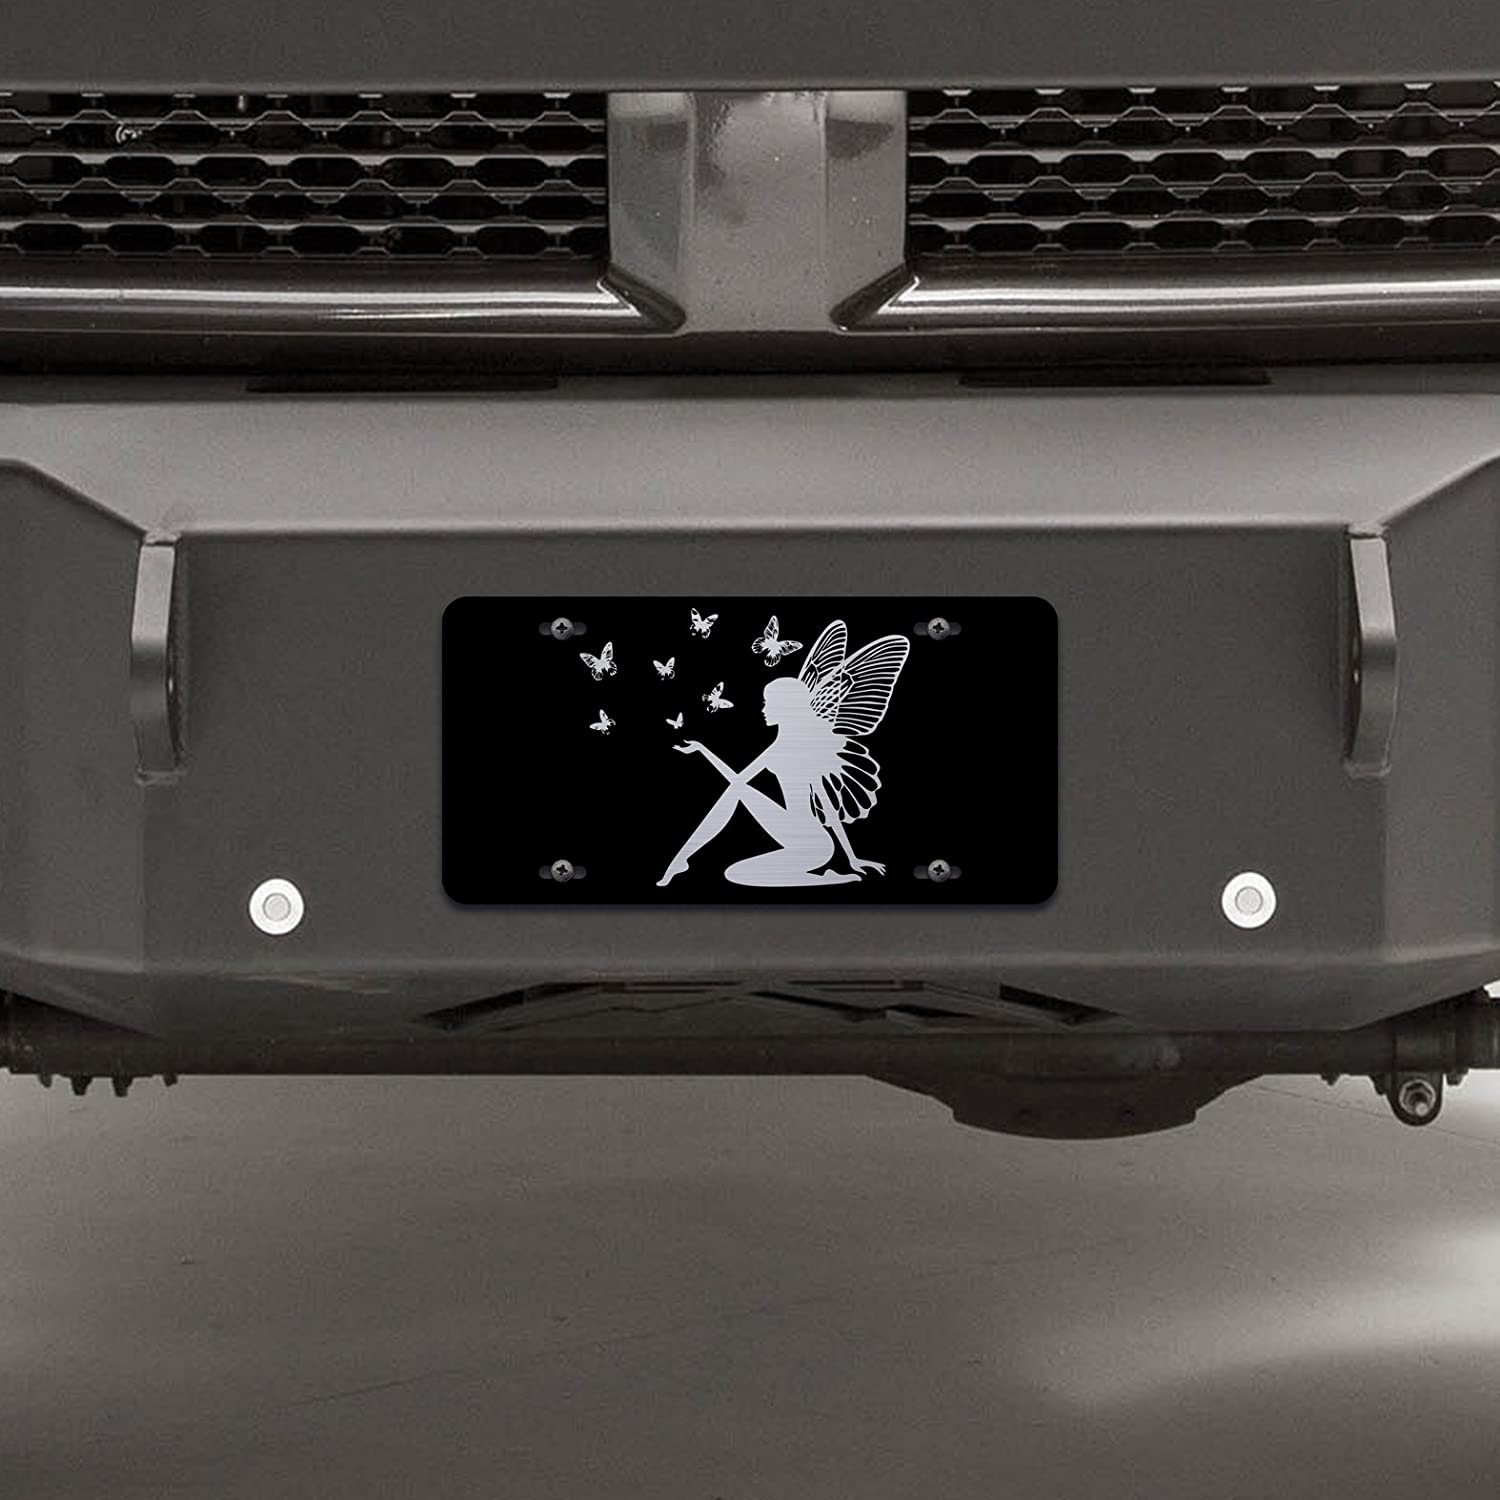 LP023 OGO Premium Quality Vincit Veritas Butterfly Fairy Black Laser Etched License Plate 12-Inch By 6-Inch Tinkerbell Tinker Bell